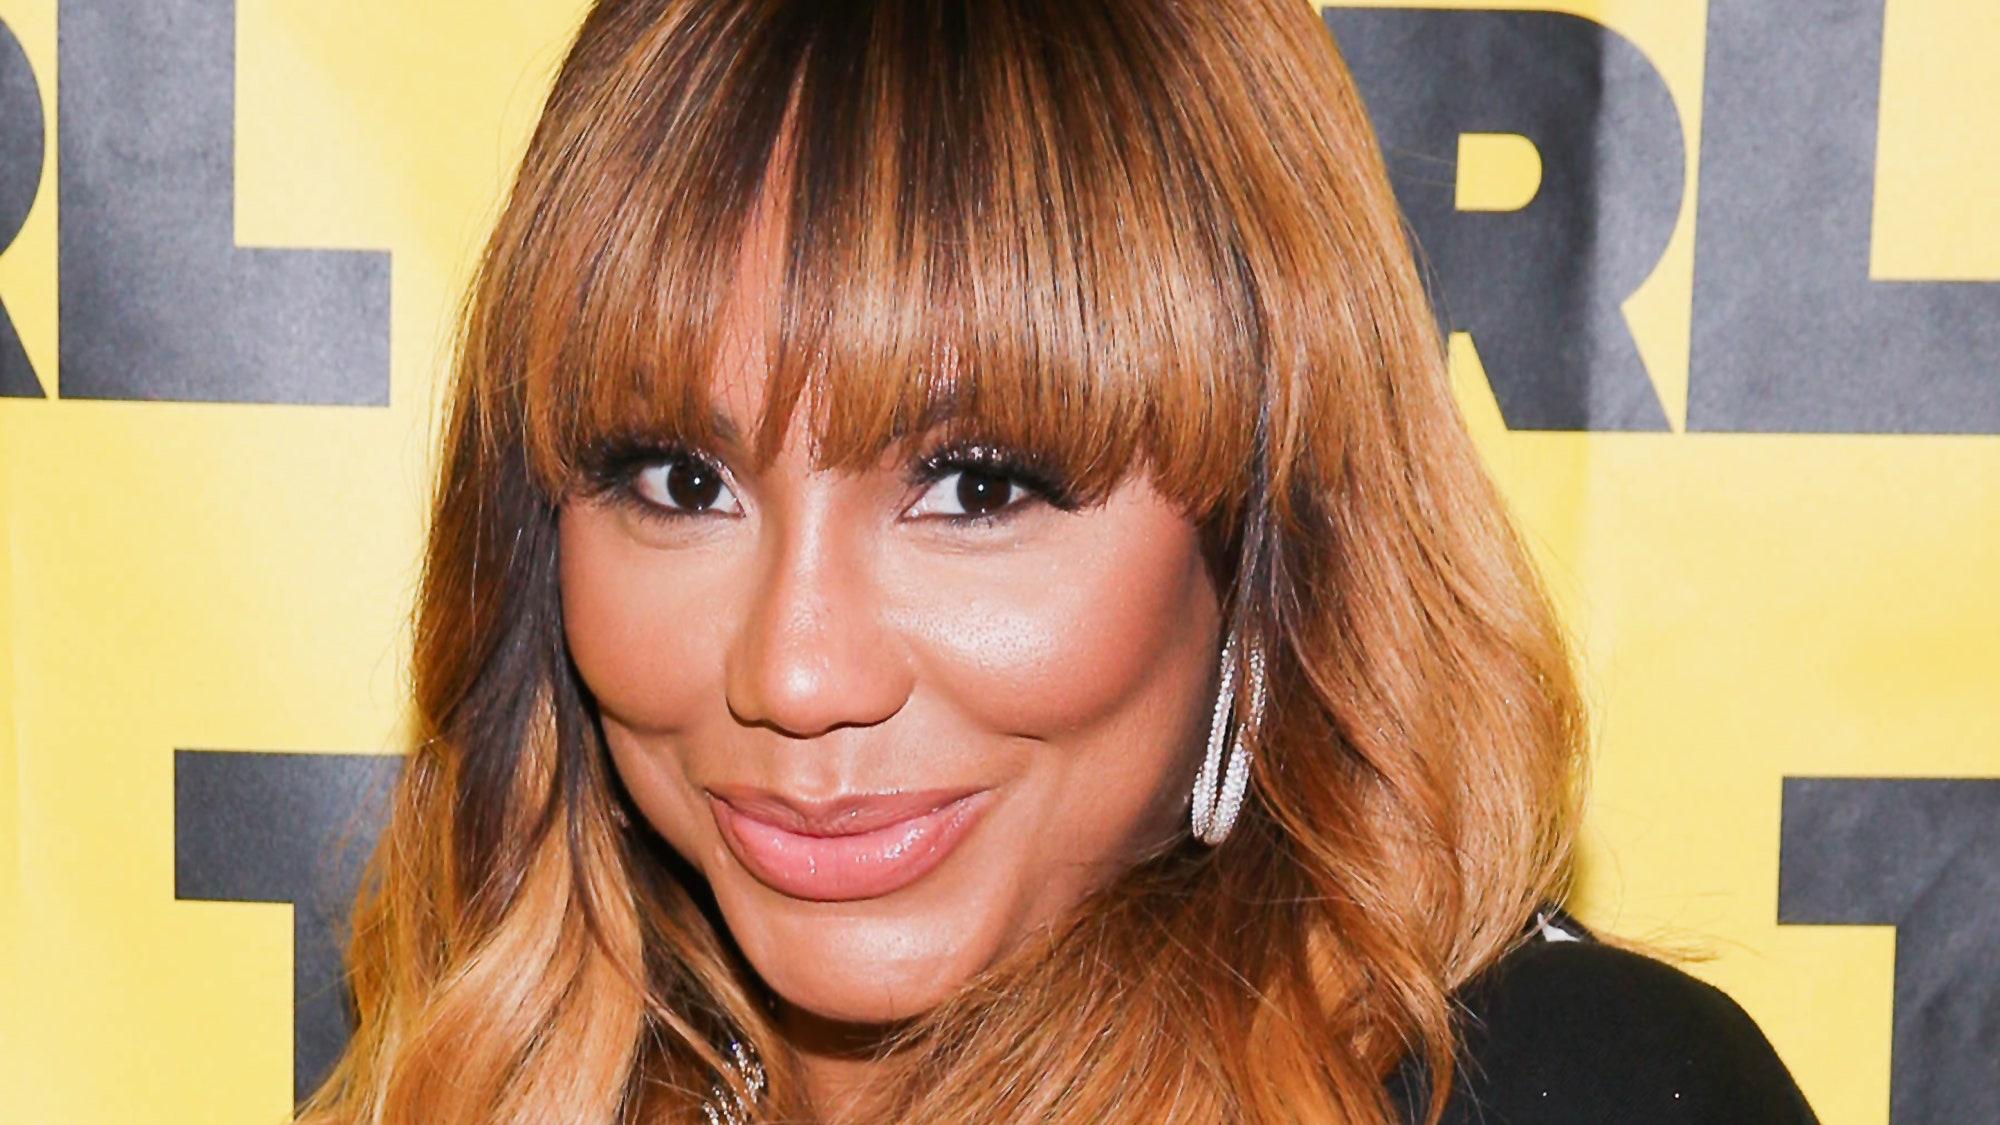 tamar-braxton-wants-to-support-your-business-heres-what-you-need-to-know